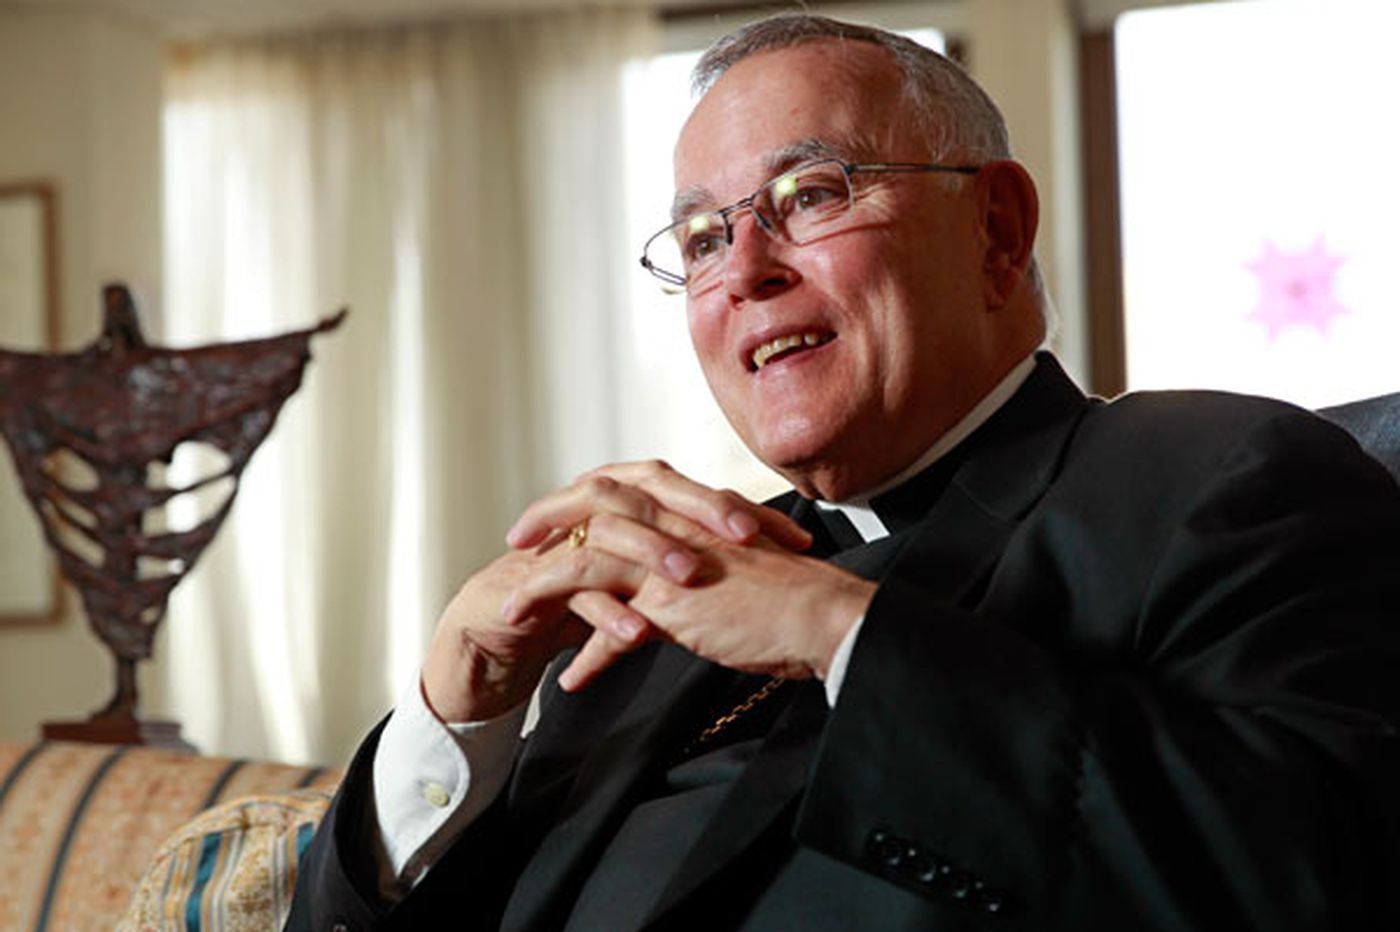 Philly's Archbishop Chaput: 'Only a fool' can believe gun control will solve mass violence